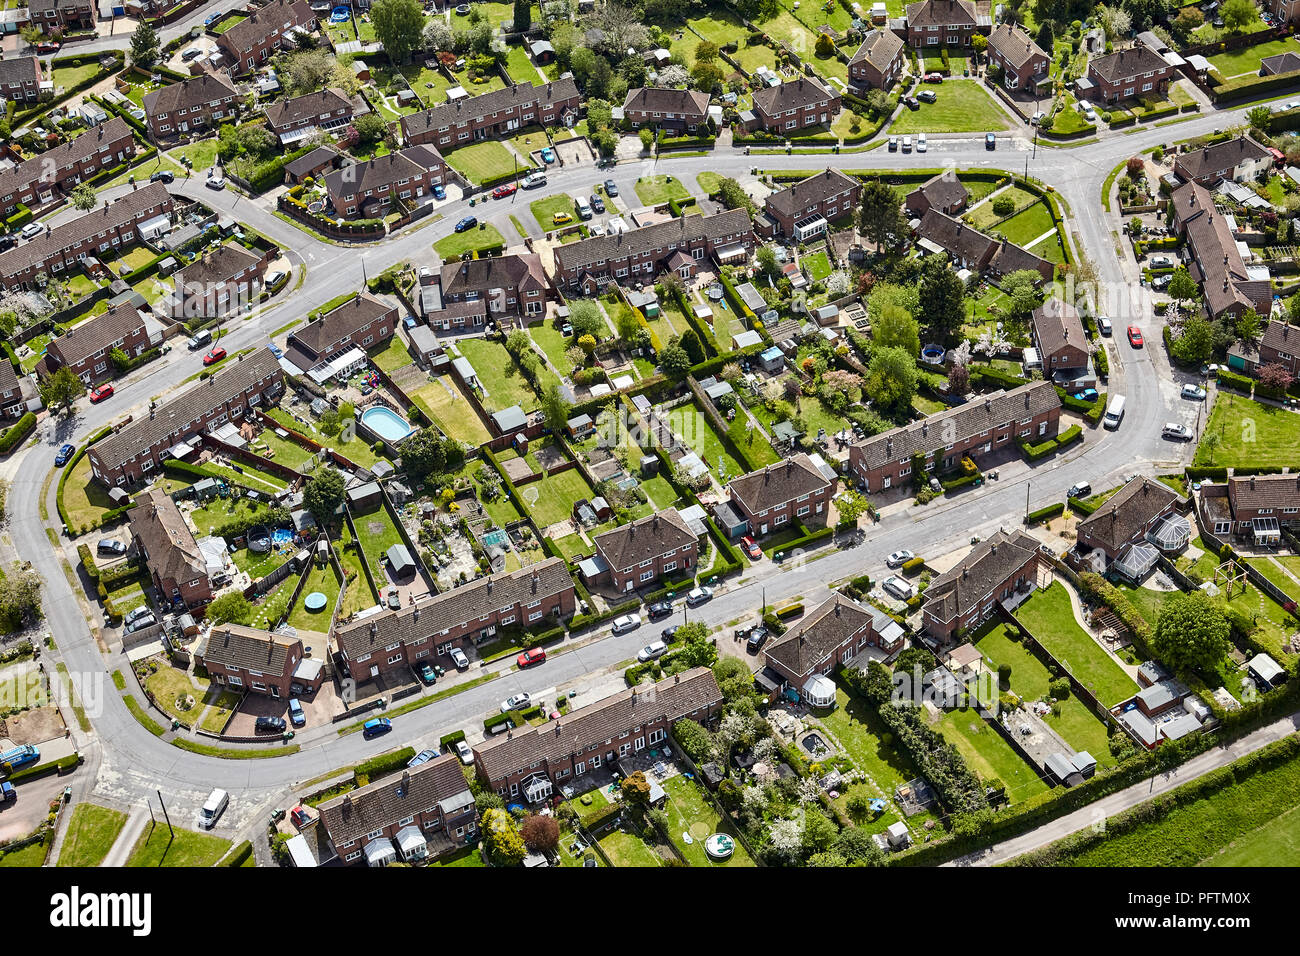 Aerial view of small estate showing road layout example of town planning Stock Photo